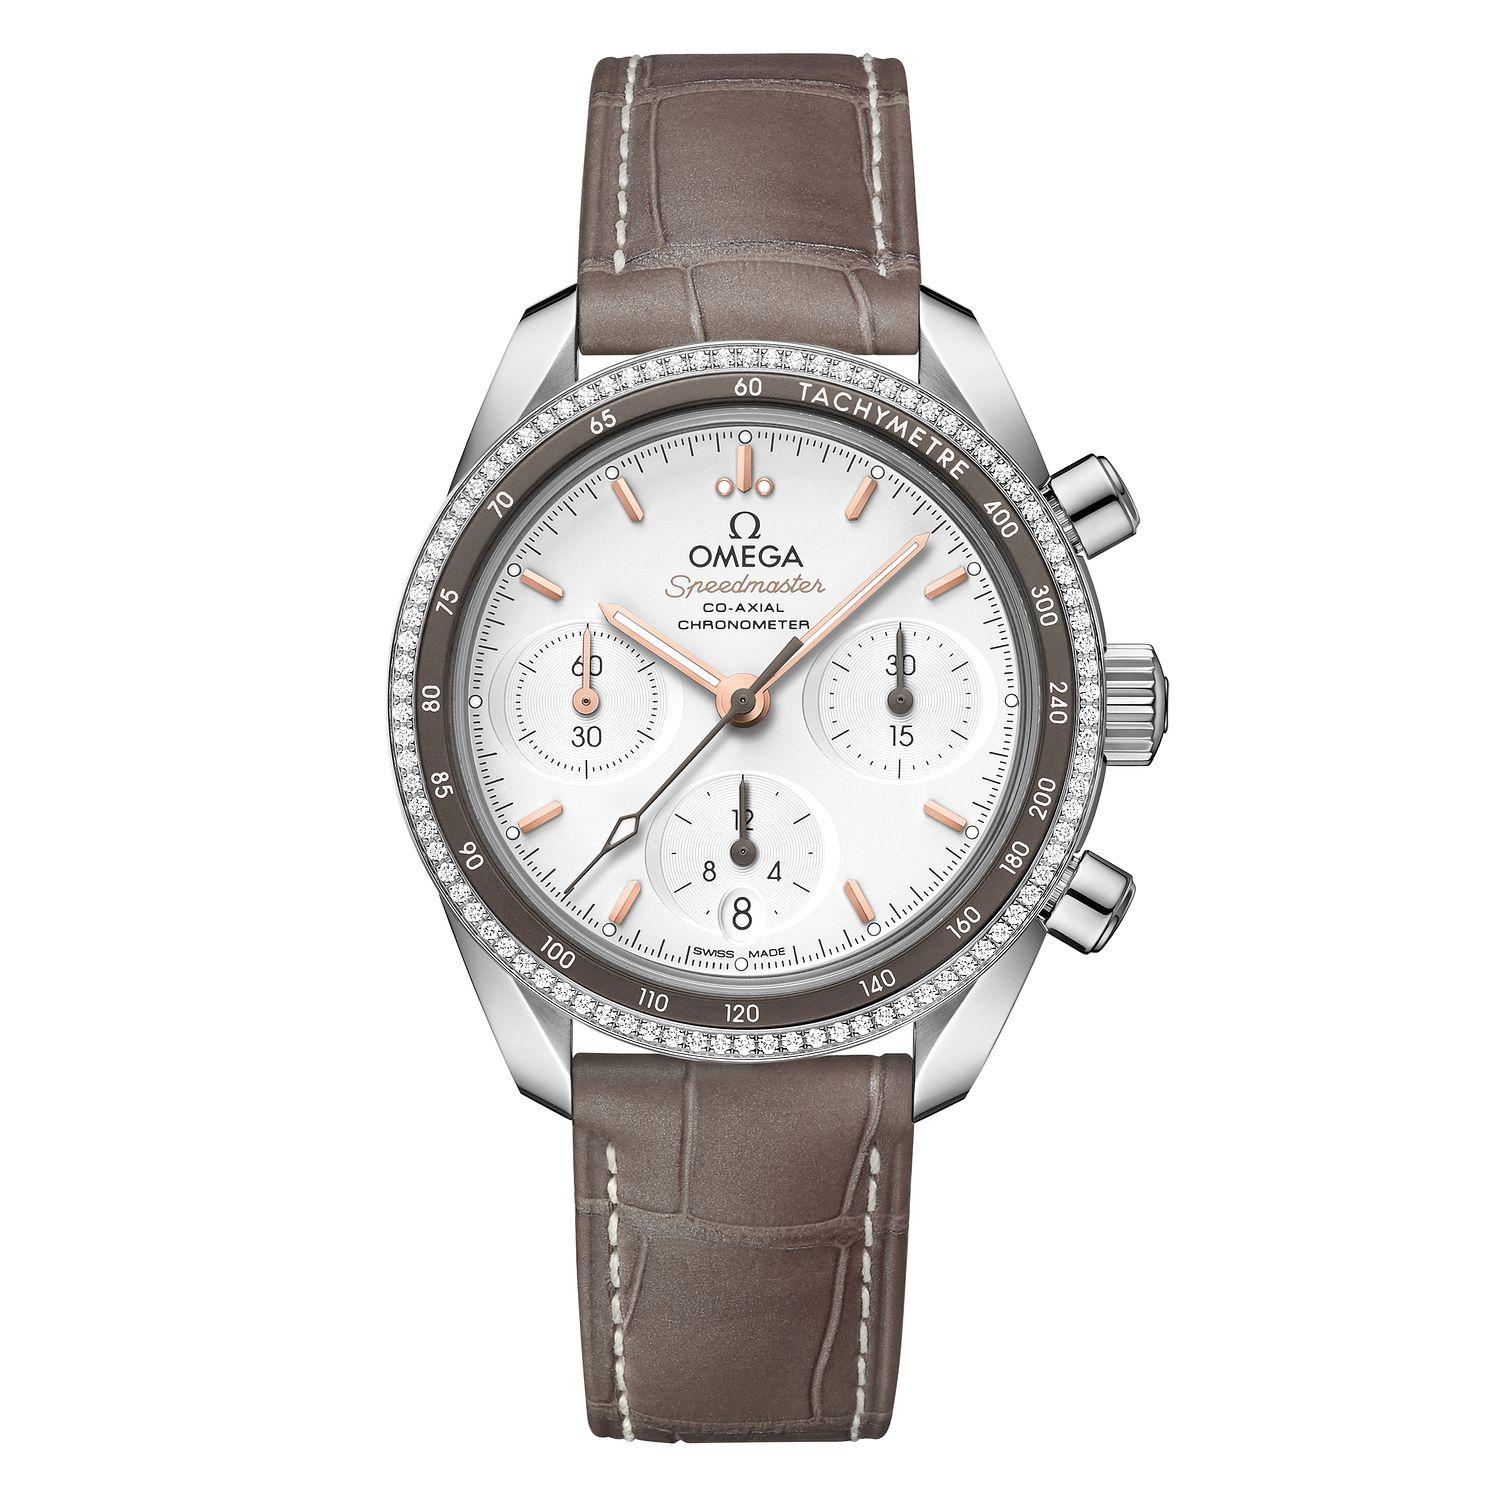 Omega Speedmaster Men's Diamond Brown Leather Strap Watch - Product number 6940145